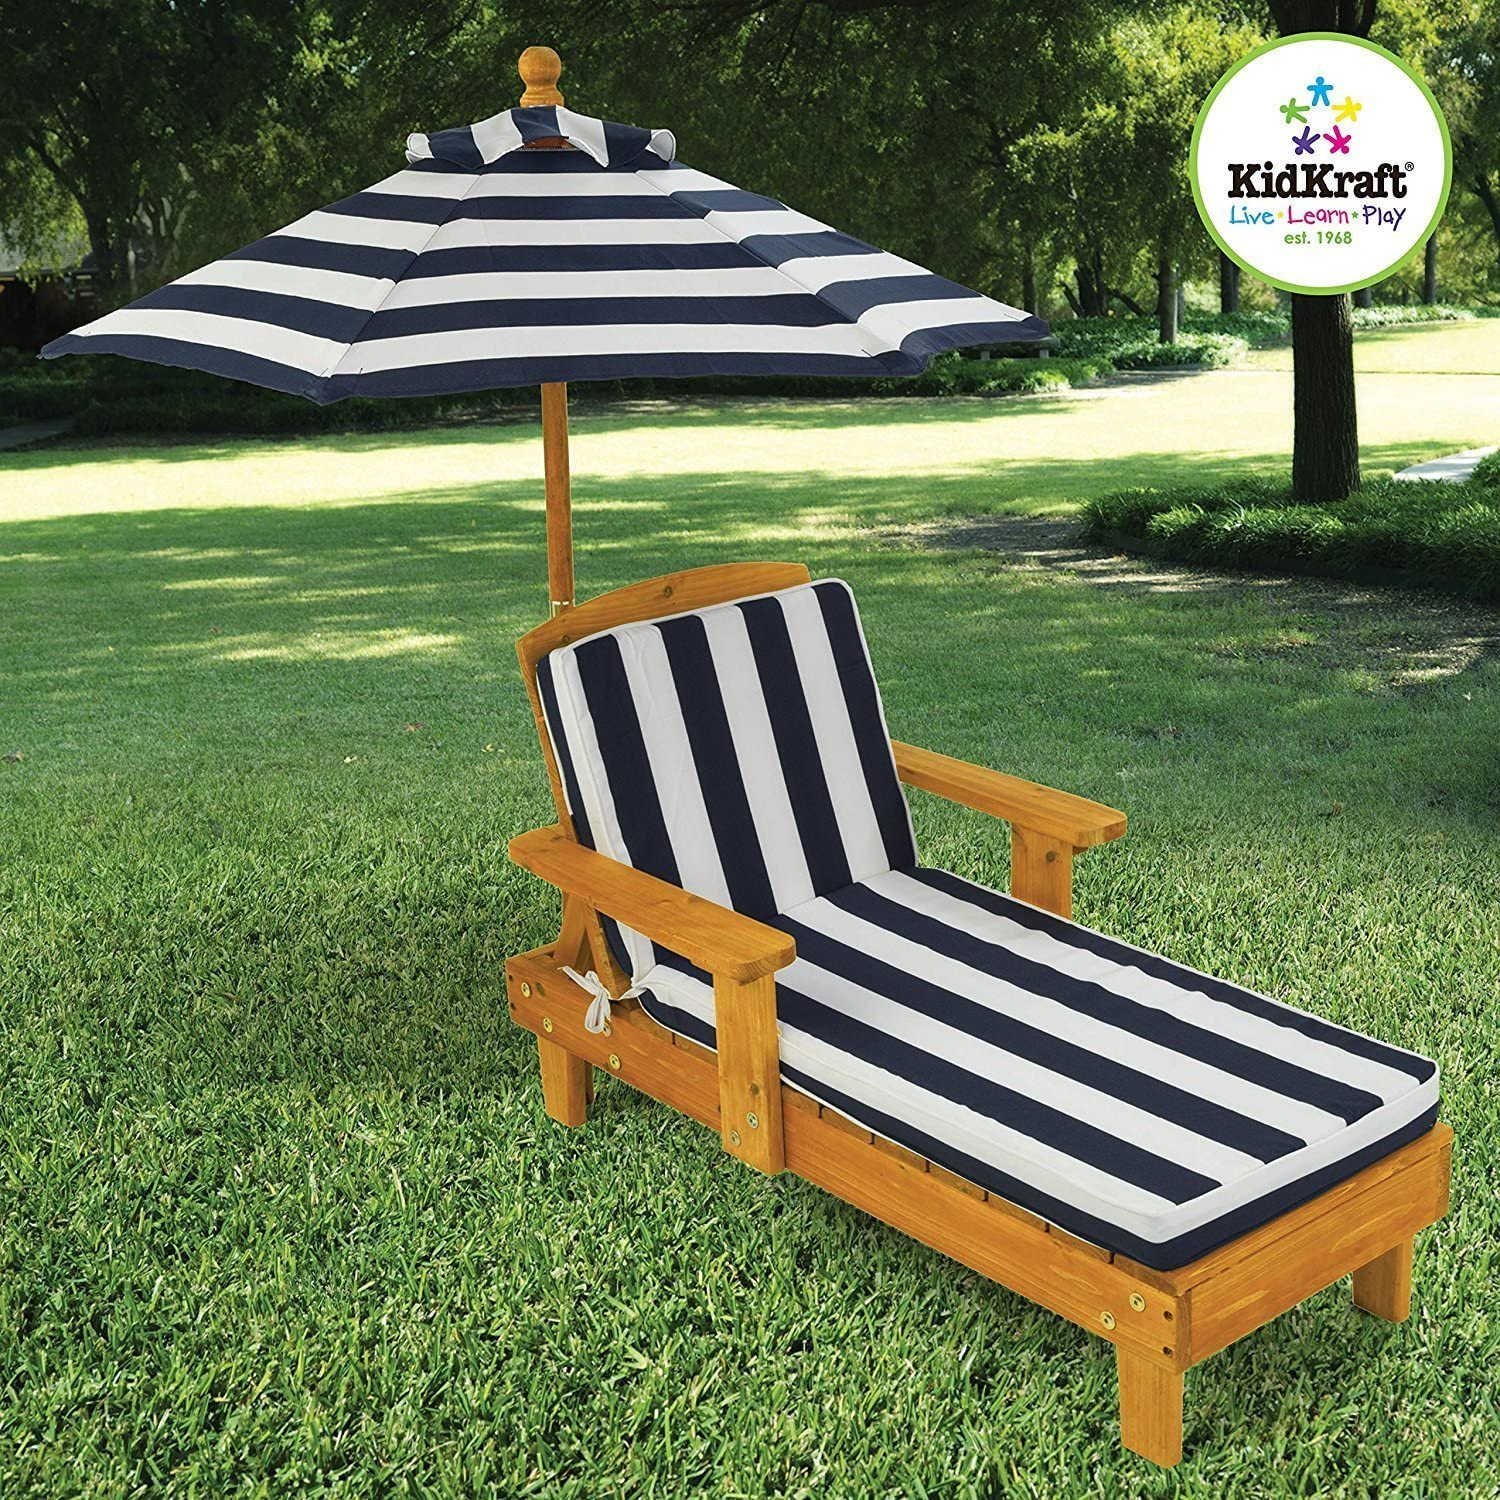 Elegant Popular Kids Toddlers Dark Blue/White Backyard Patio Deck Chaise Lounge Chair With Matching Umbrella- Beautiful Stylish Lightweight- Weatherproof Finish Portable Durable Sturdy- Summer Fun: Toys & Games